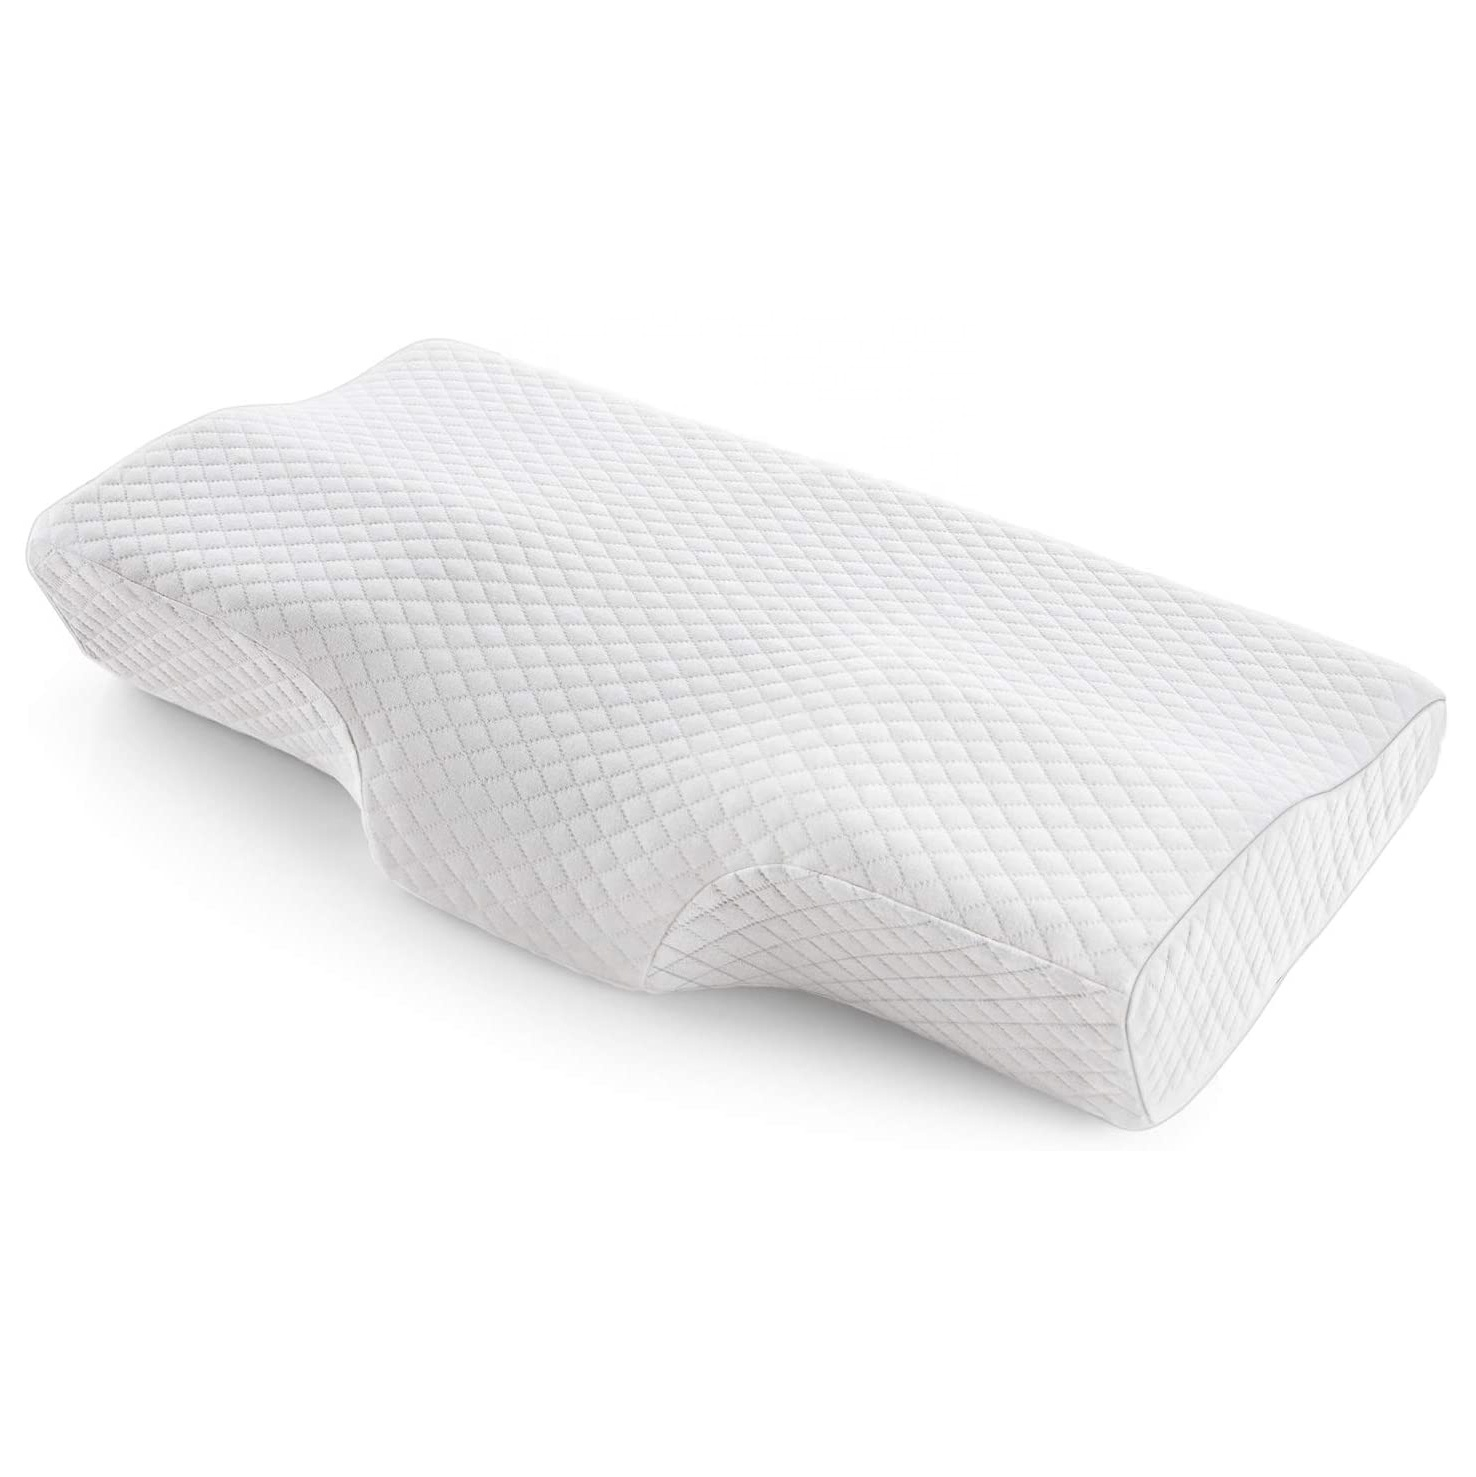 memory foam pillows cervical pillow for orthopedic sleeping neck pain ideal for side sleepers best pillows for sleeping buy posture